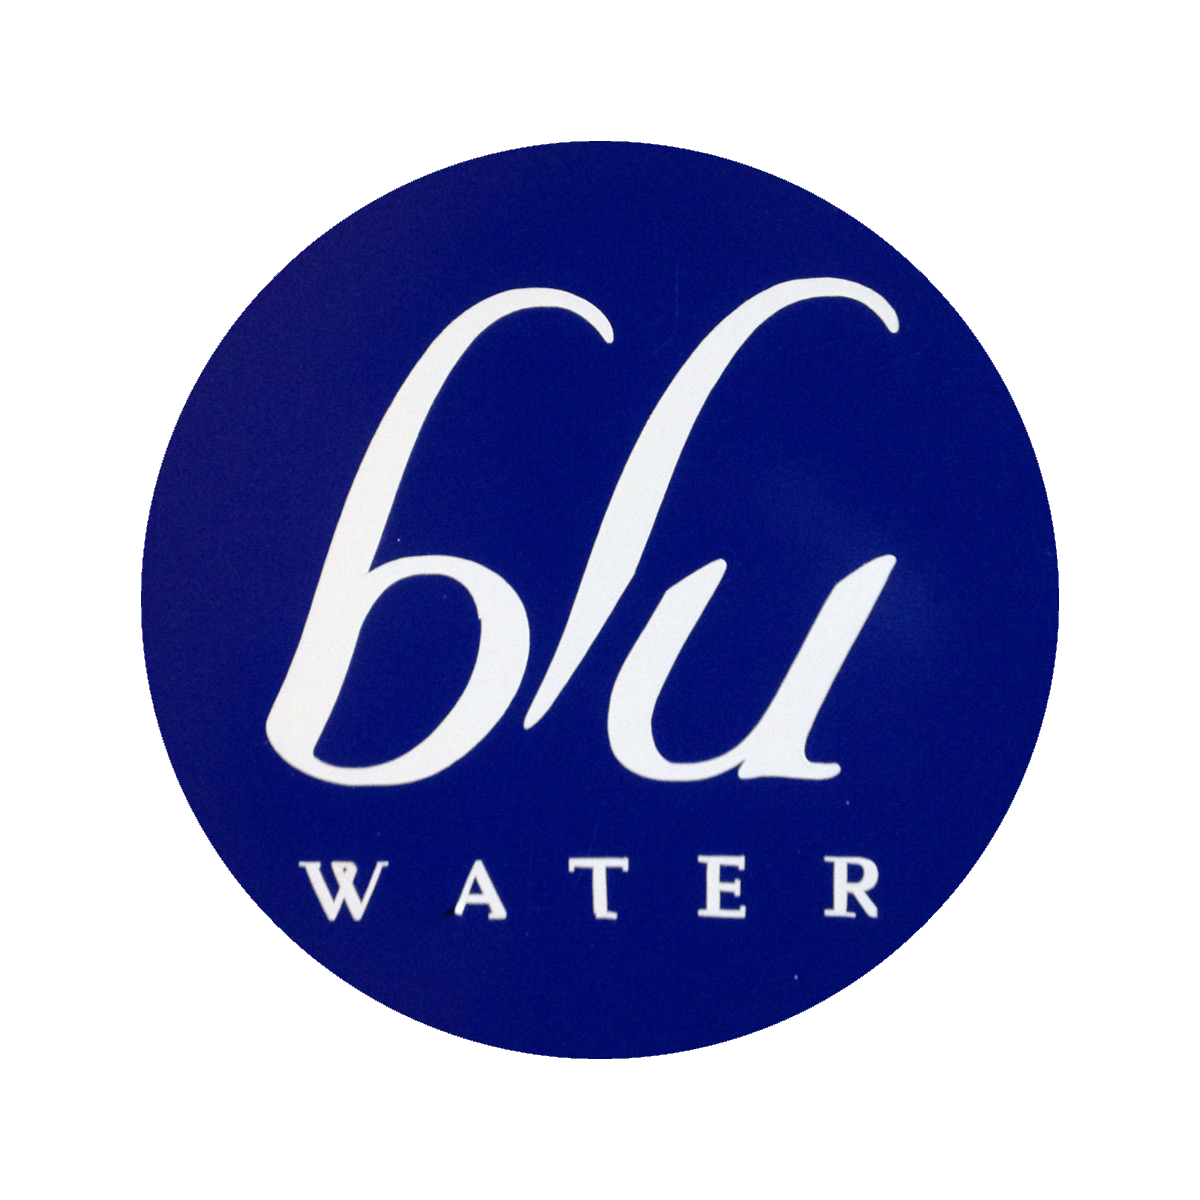 BLUWATERVECTOR.png